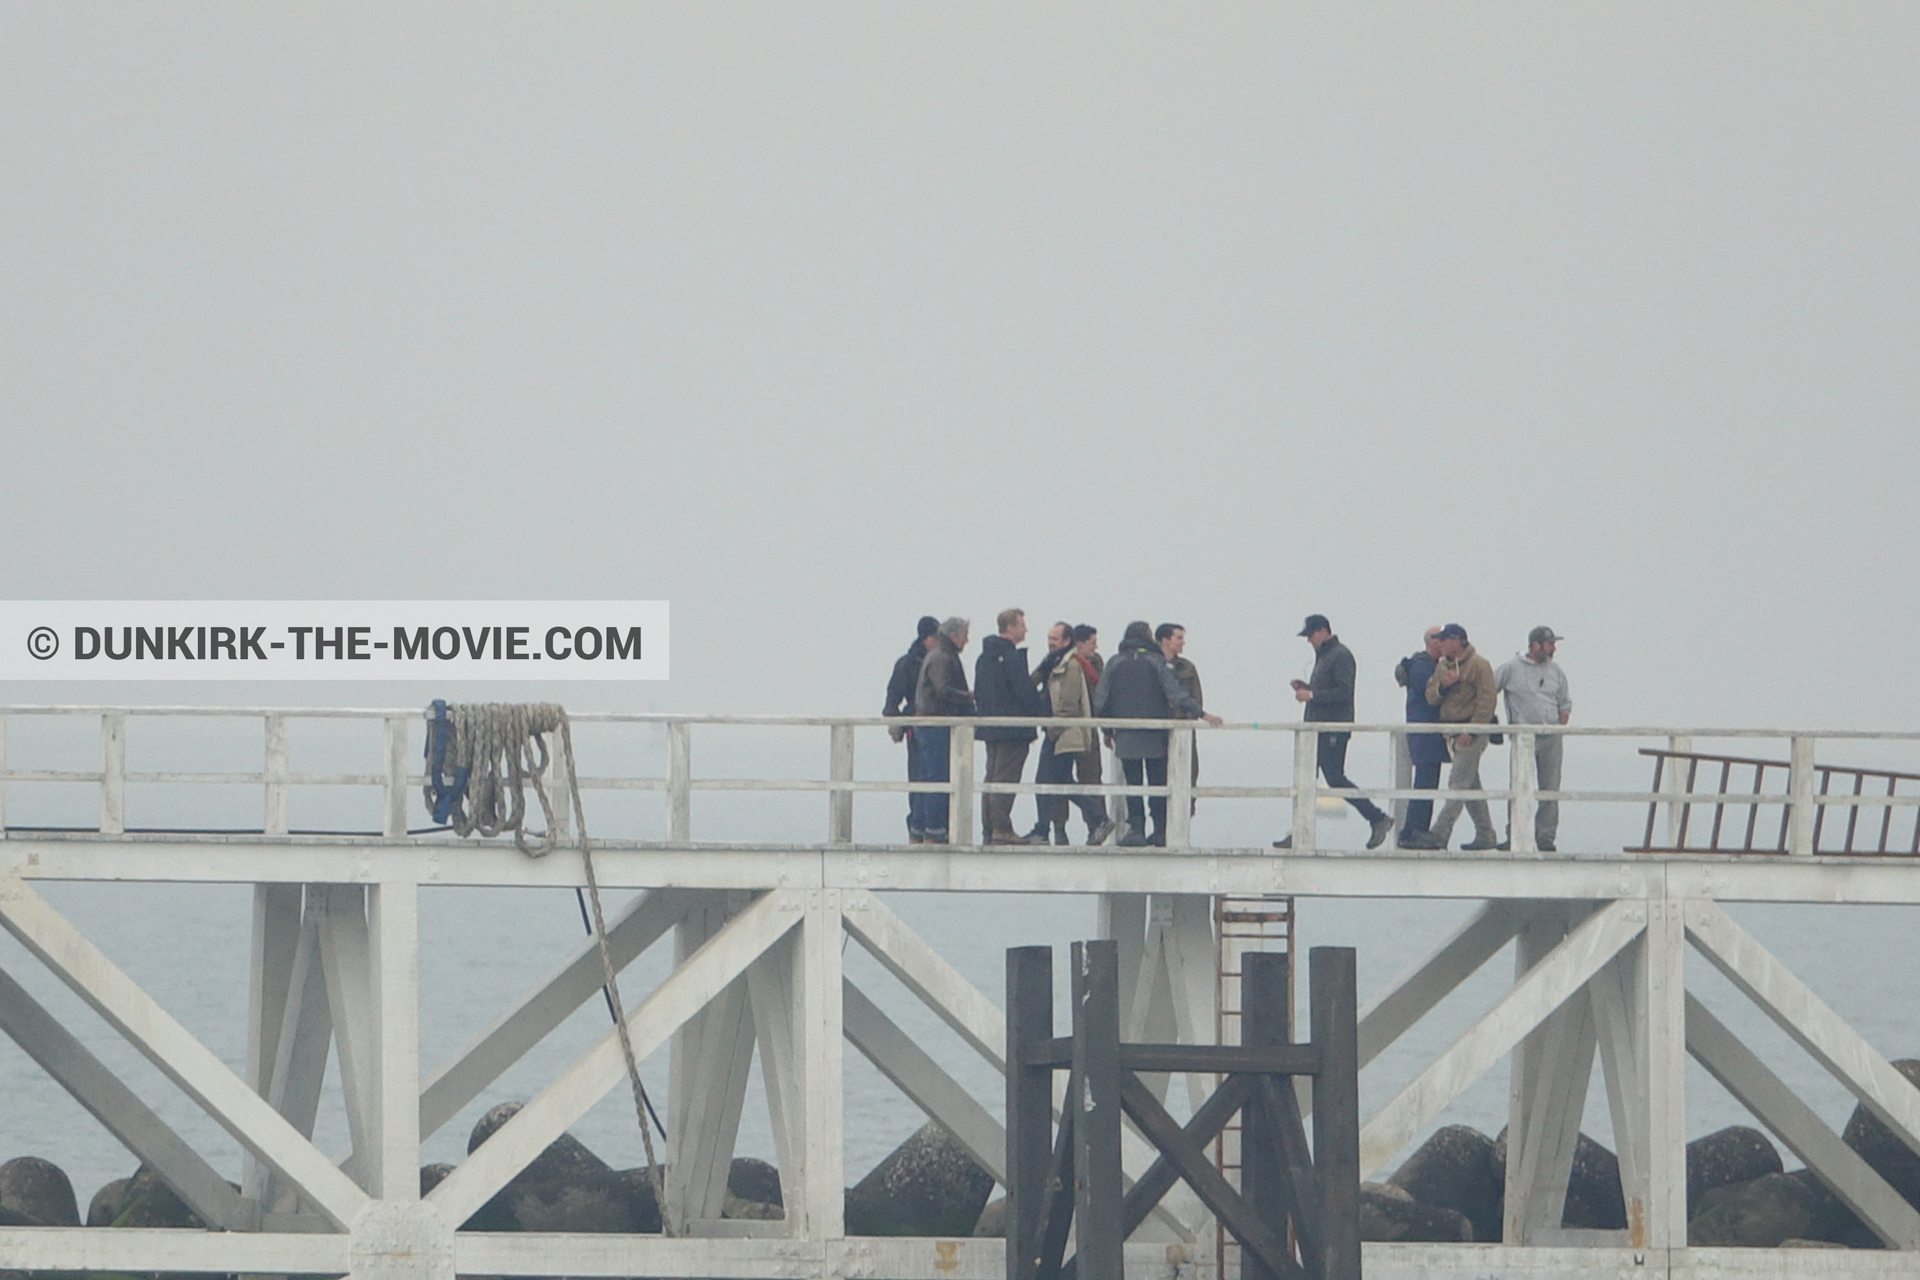 Picture with grey sky, Hoyte van Hoytema, EST pier, Christopher Nolan, technical team, Nilo Otero,  from behind the scene of the Dunkirk movie by Nolan